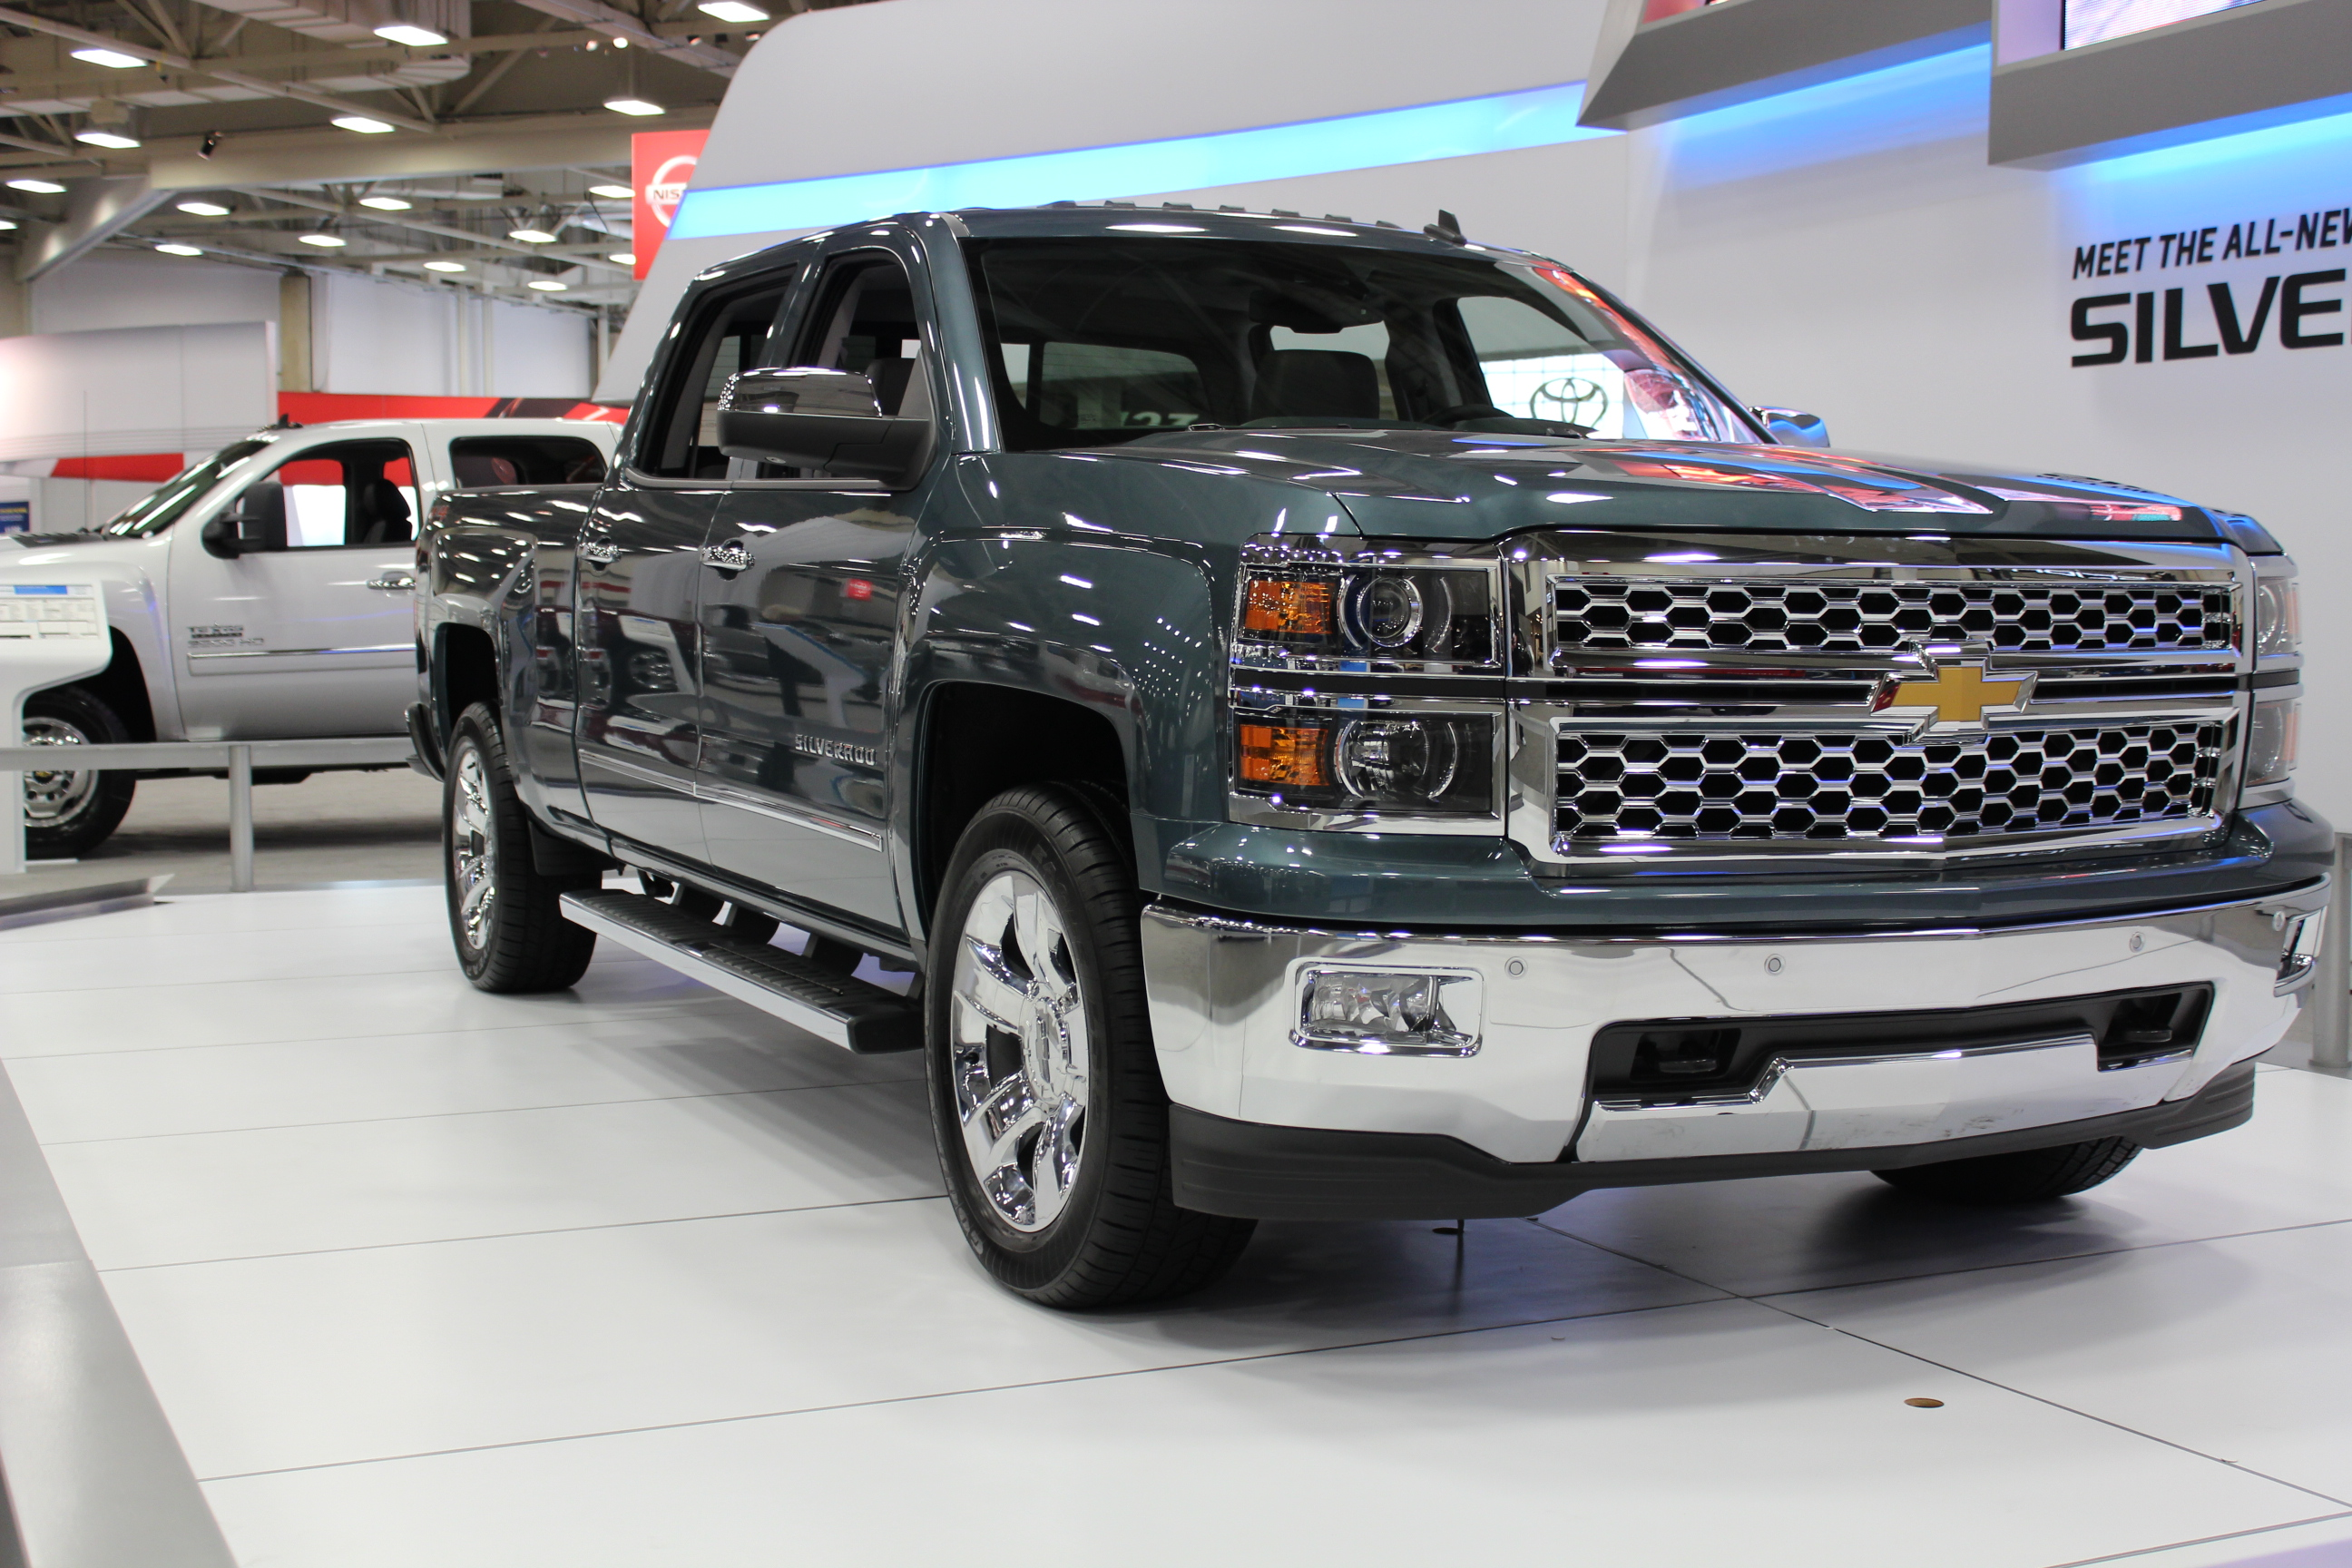 2014 Chevrolet Silverado At The Dallas Auto Show Txgarage